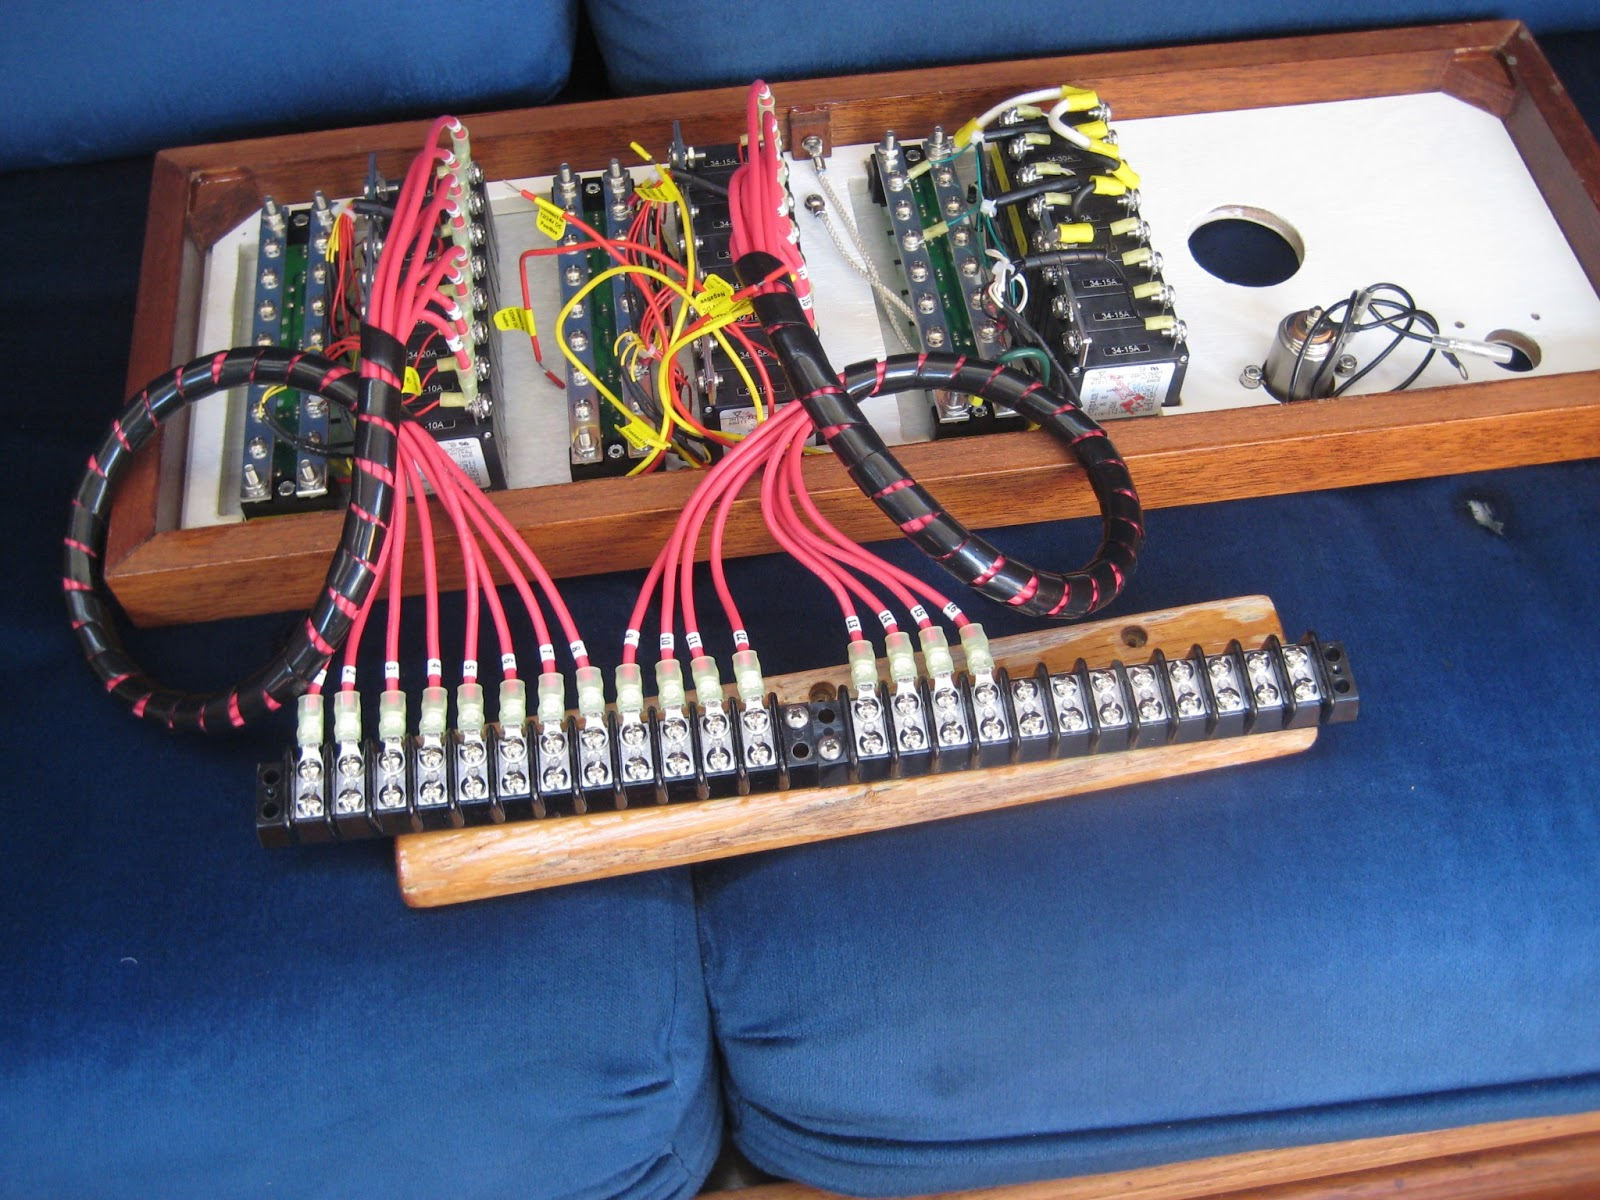 The Circe Chronicles May 2013 Numbered Wiring Harness We Decided To Use Terminal Strips Provide An Neat And Easy Way Of Joining Existing Boat Into New Dc Distribution Panels